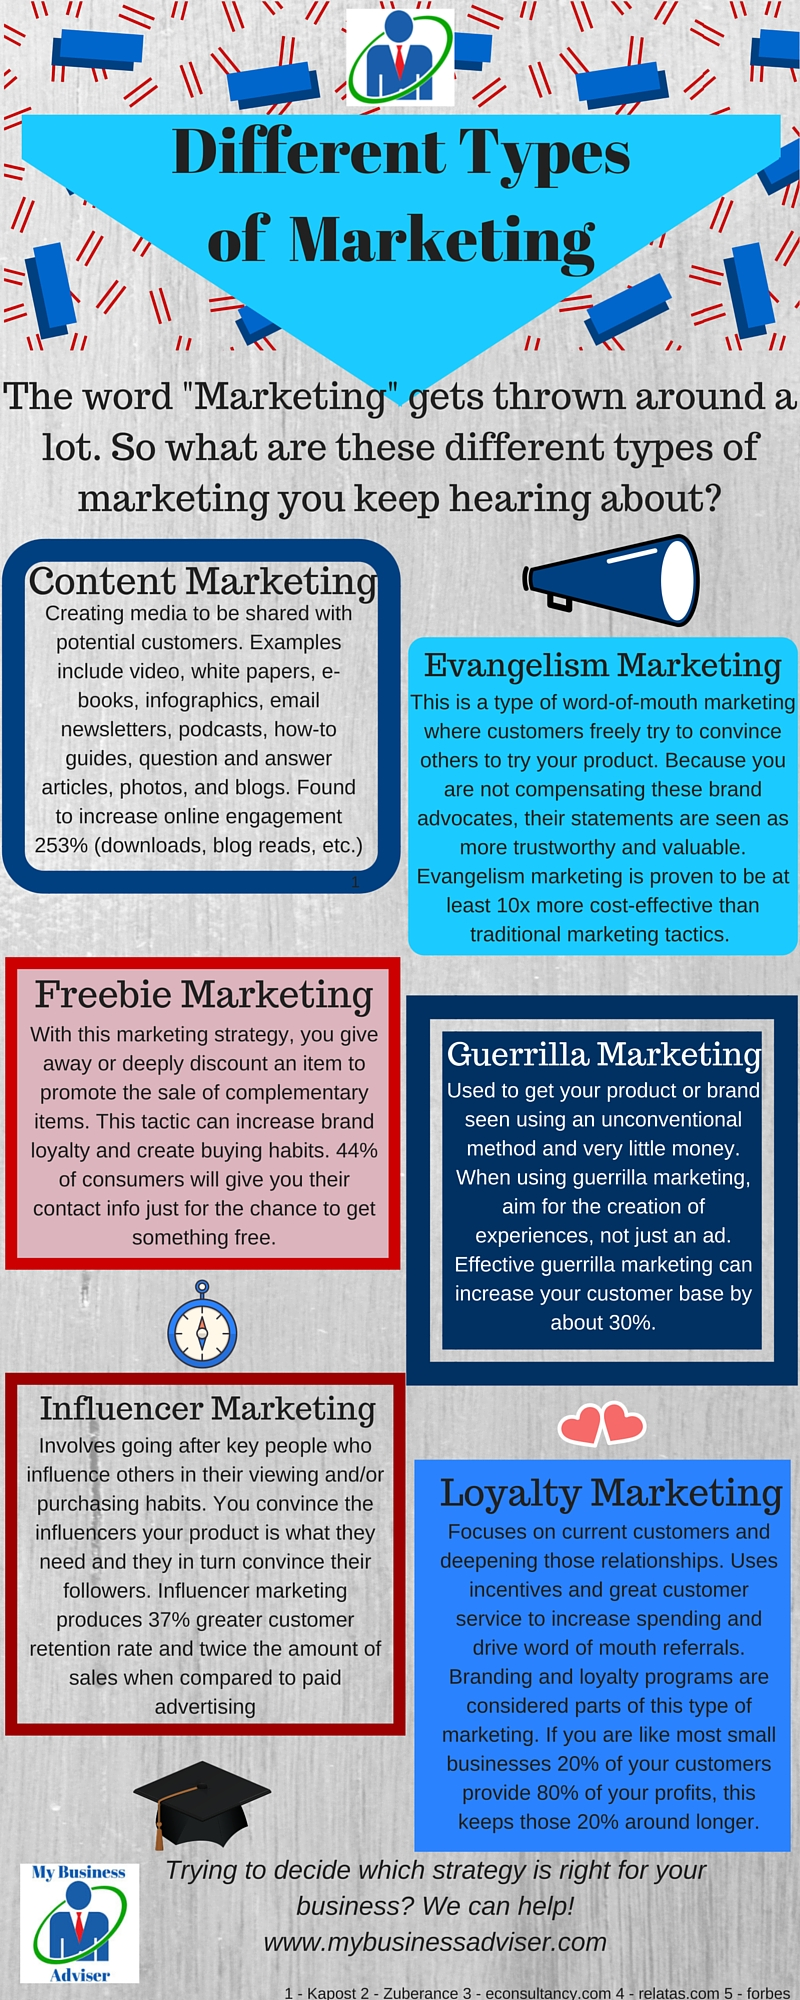 DifferentTypes of Marketing